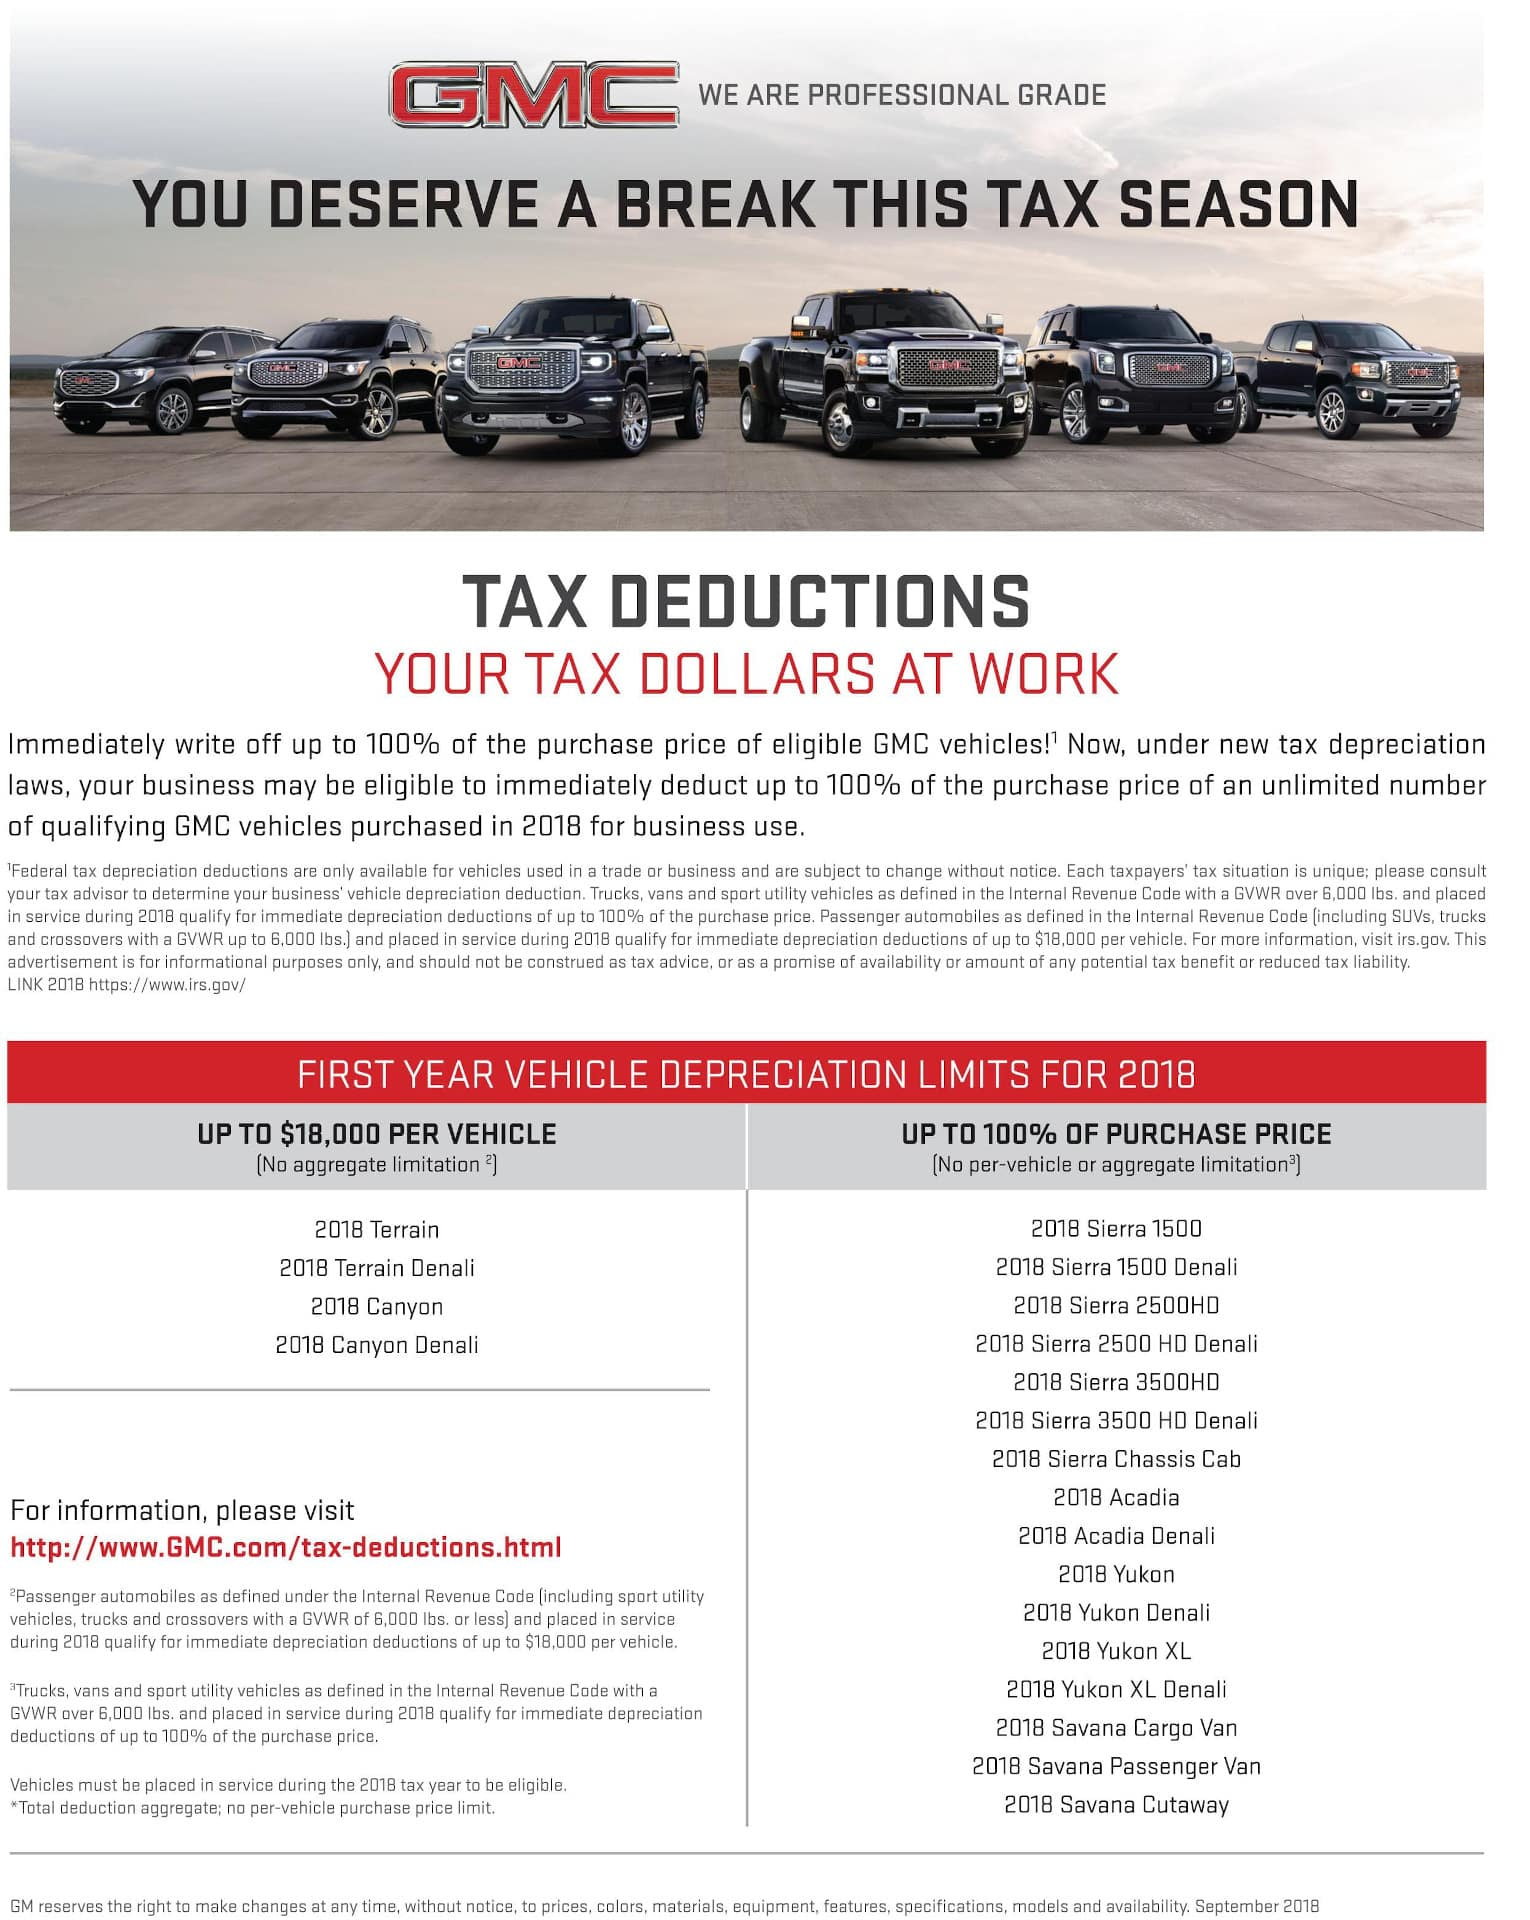 GMC Tax Deductions